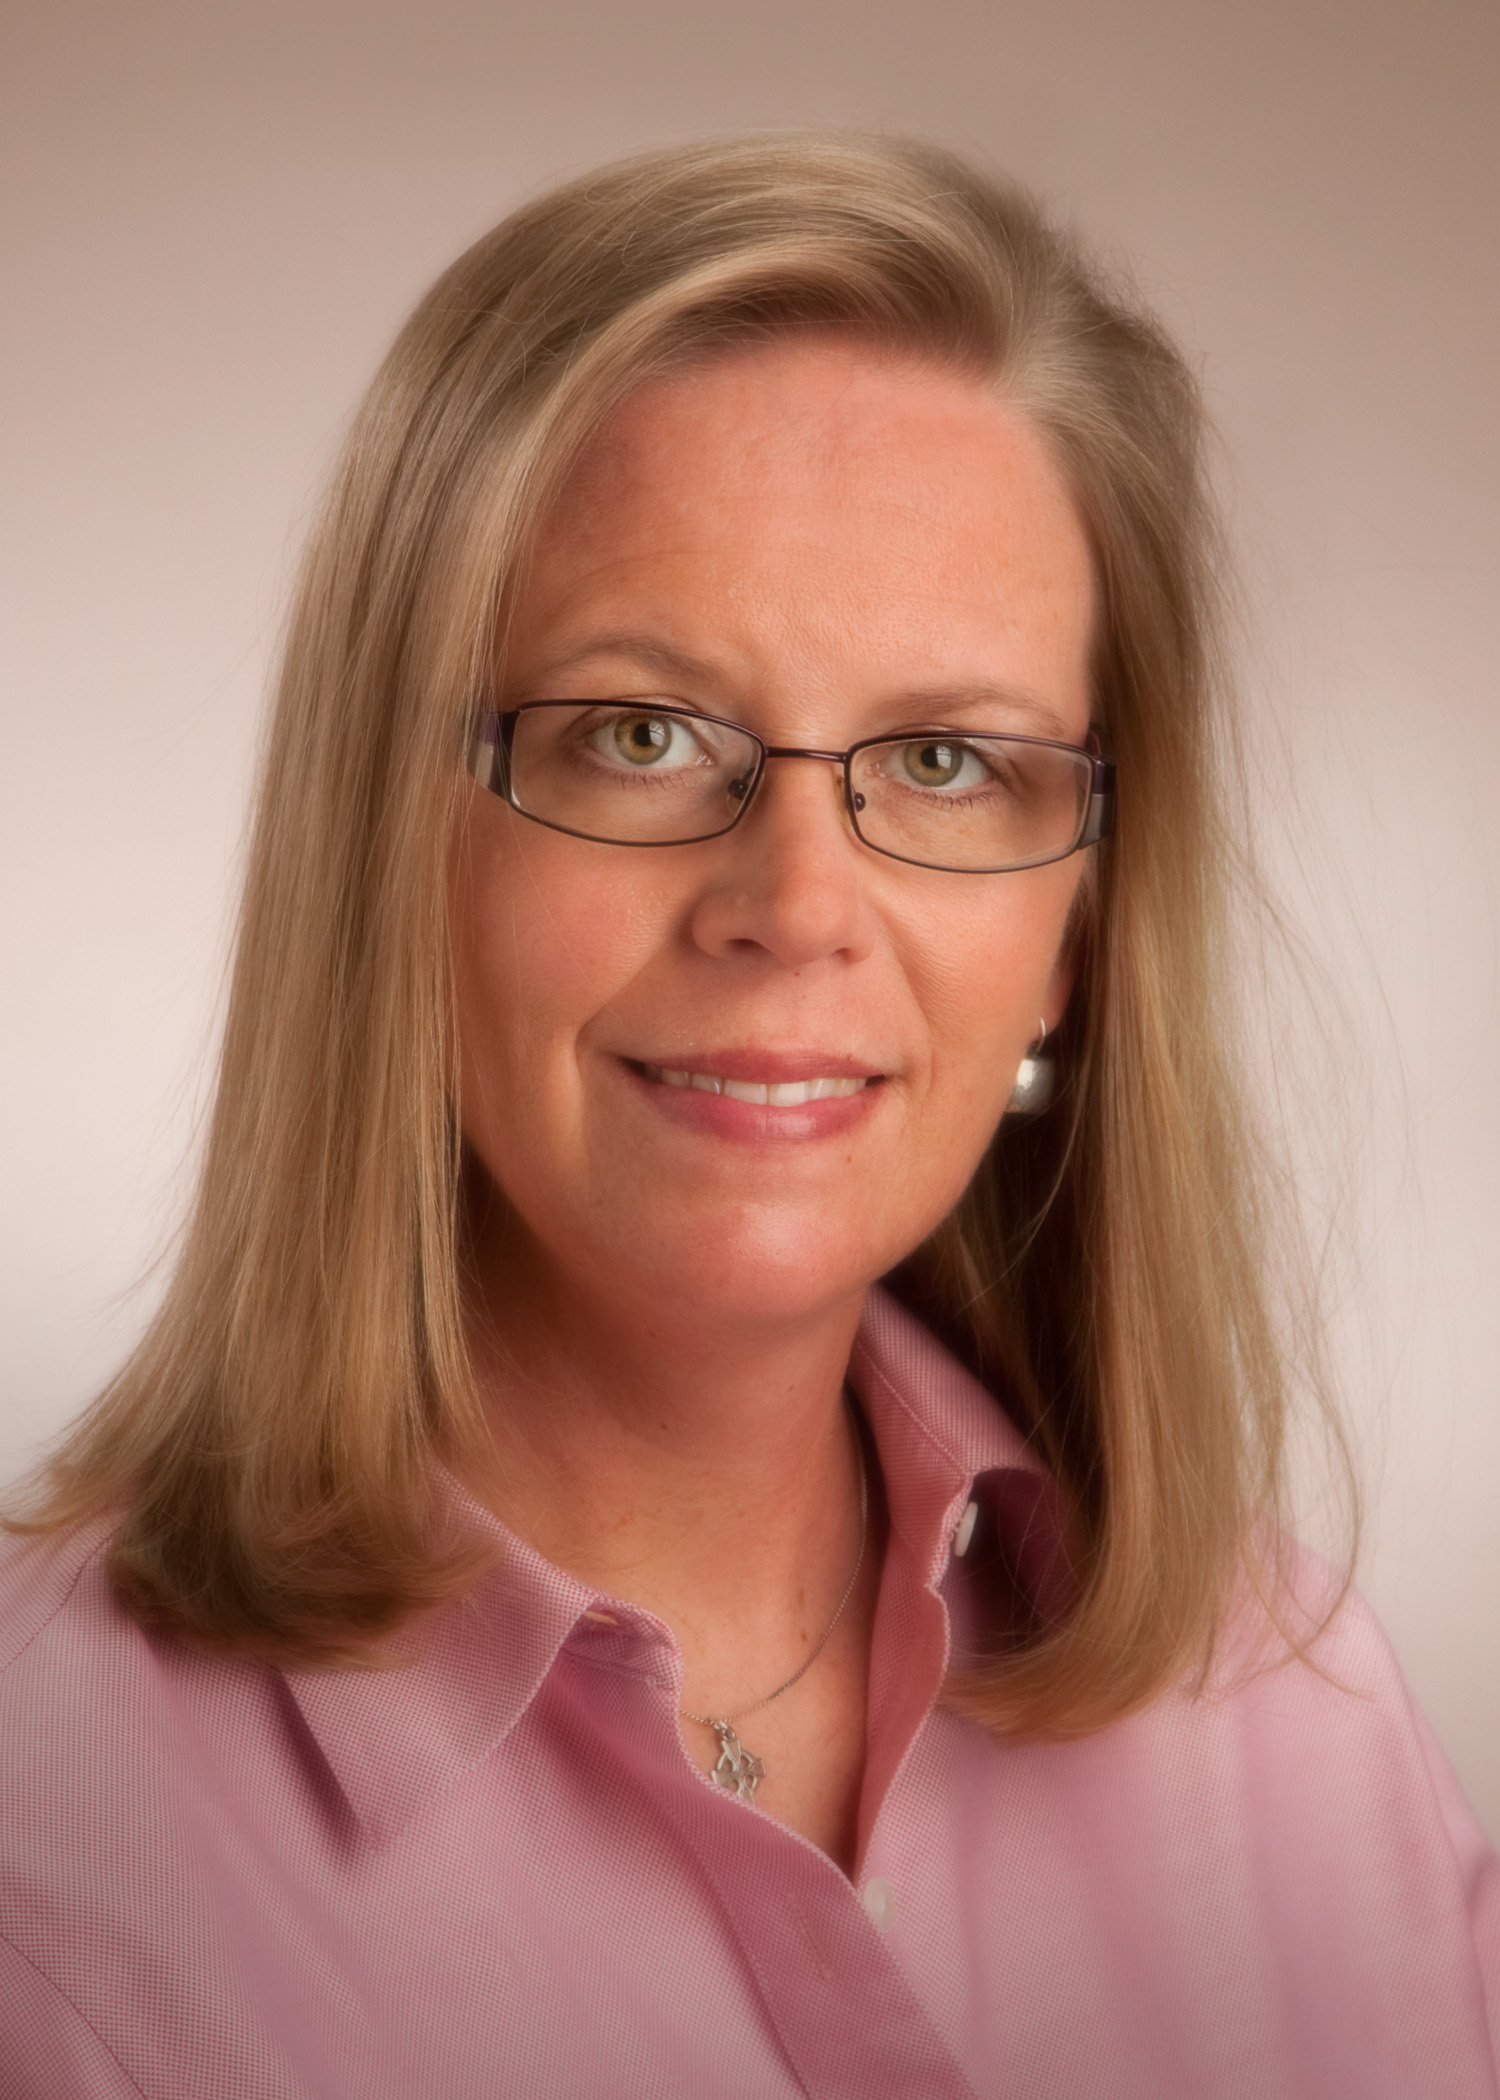 Picture of Kelli Olfers, Health Department Director